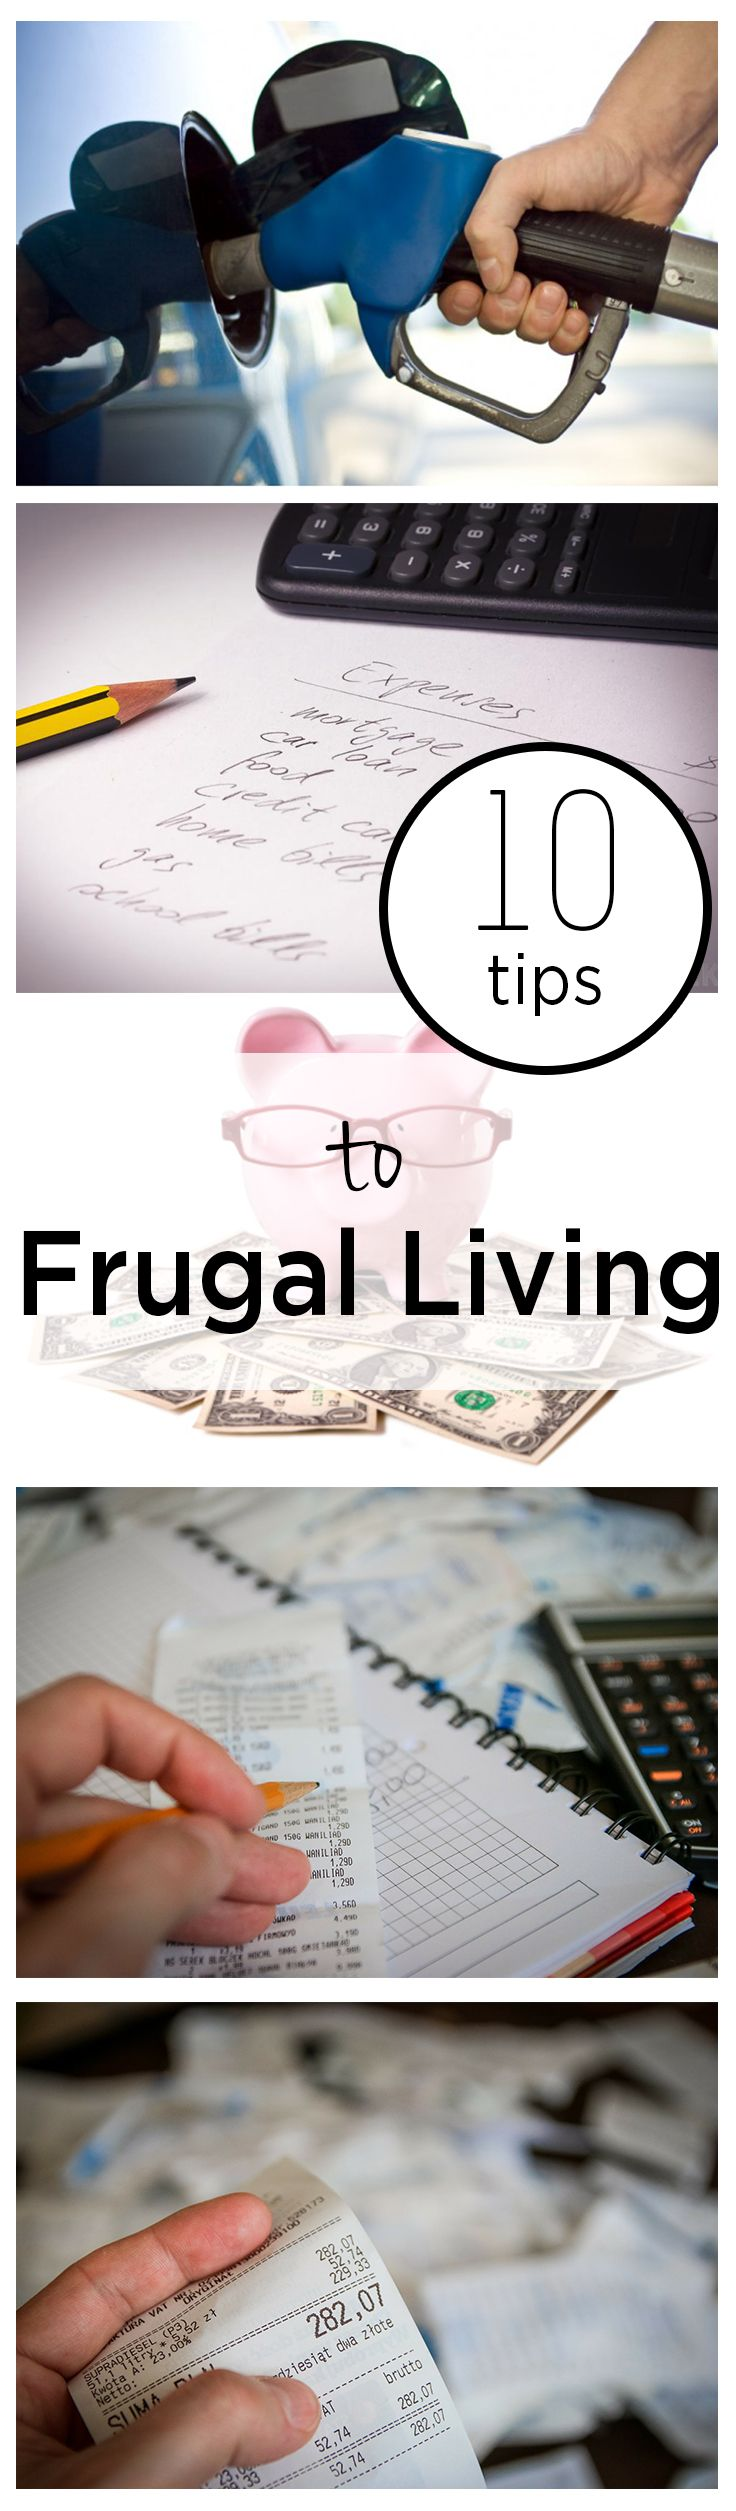 10 Tips to Frugal Living